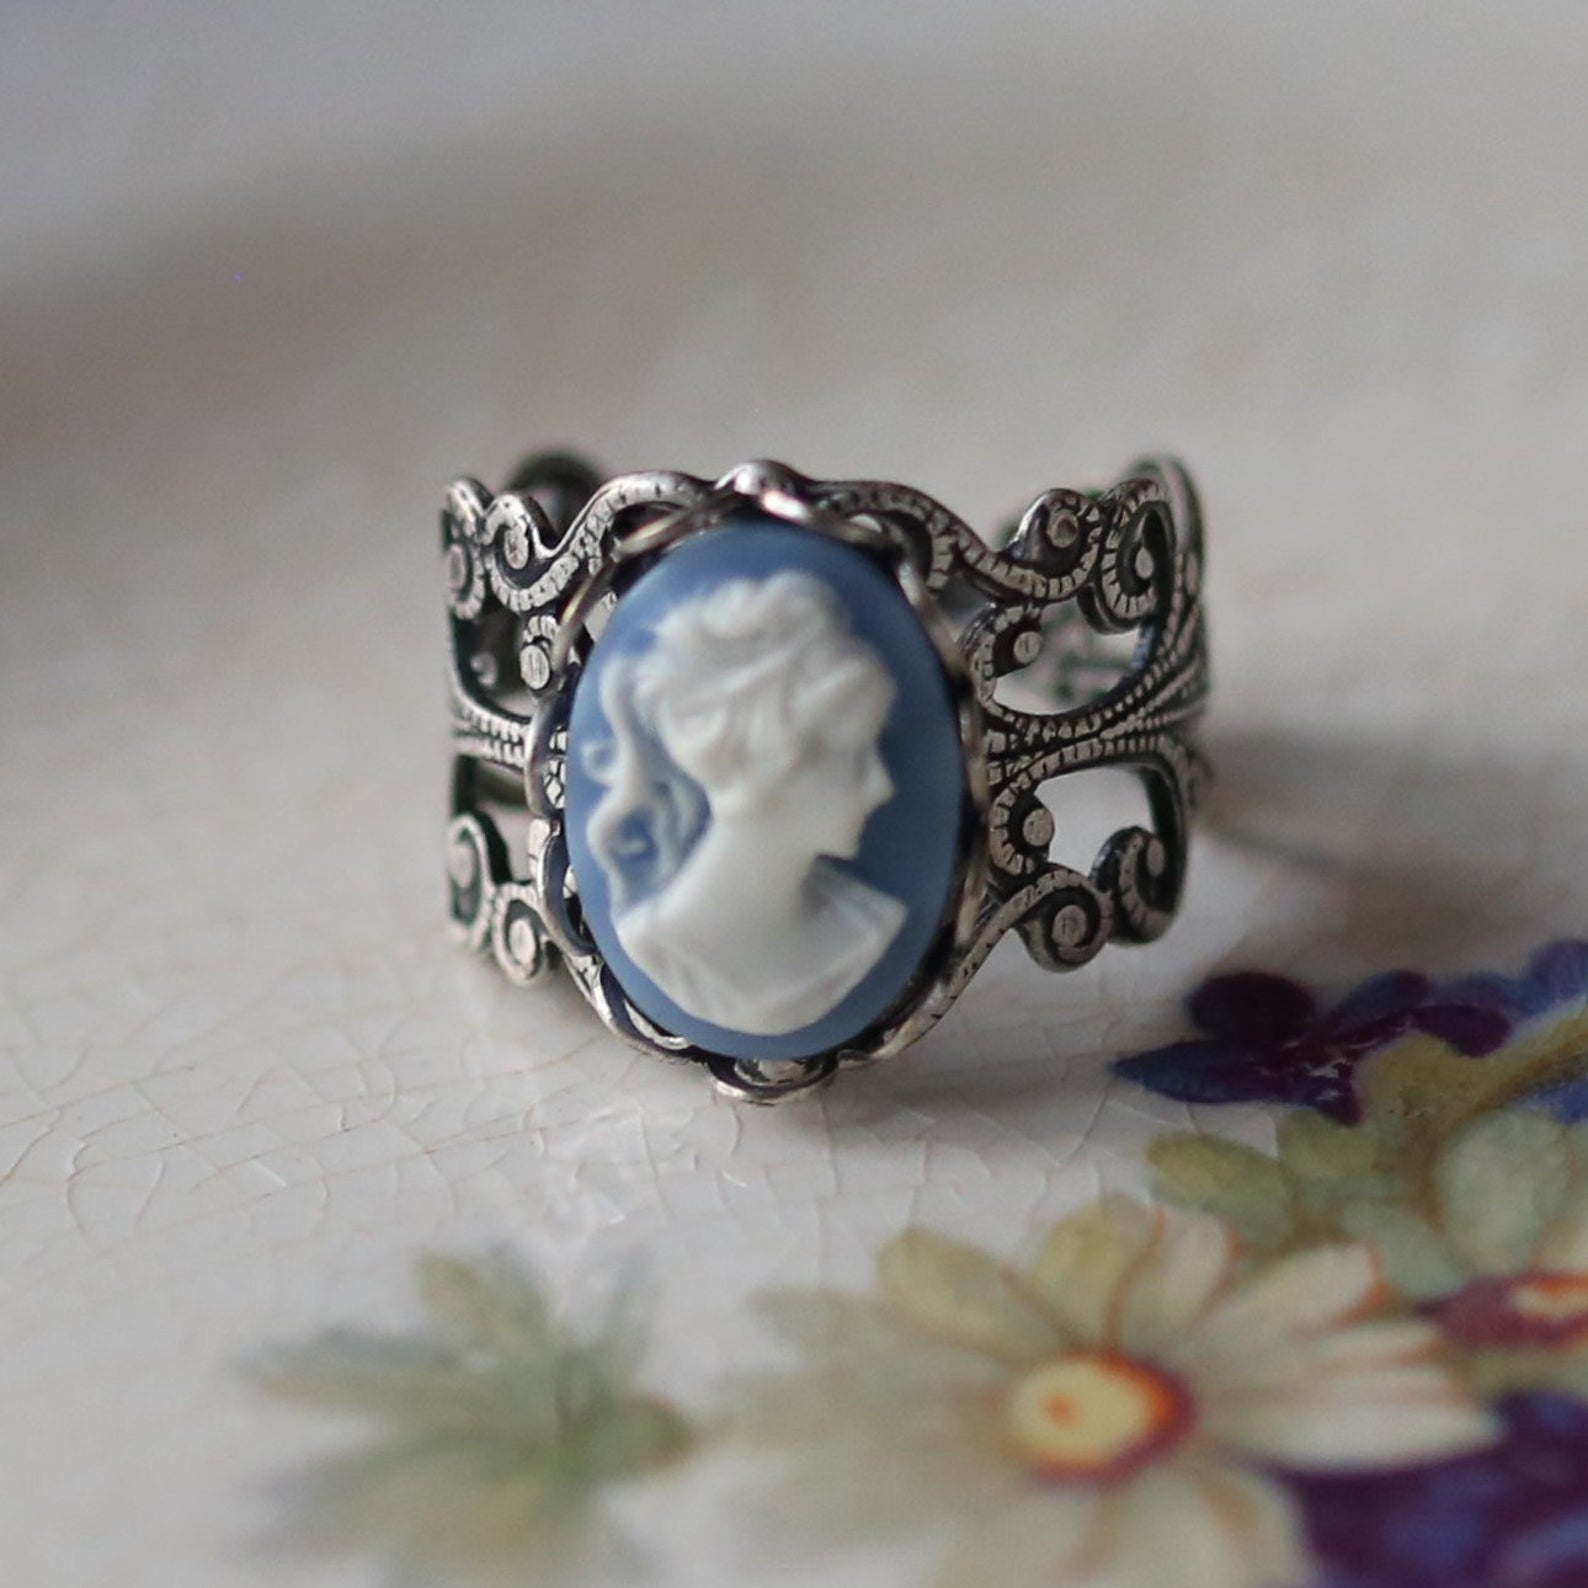 This is a ring. There is a cameo of a lady, which is to say a bust, on a blue drop background. The shank surrounds the size of the backdrop in intricate silver detailing.